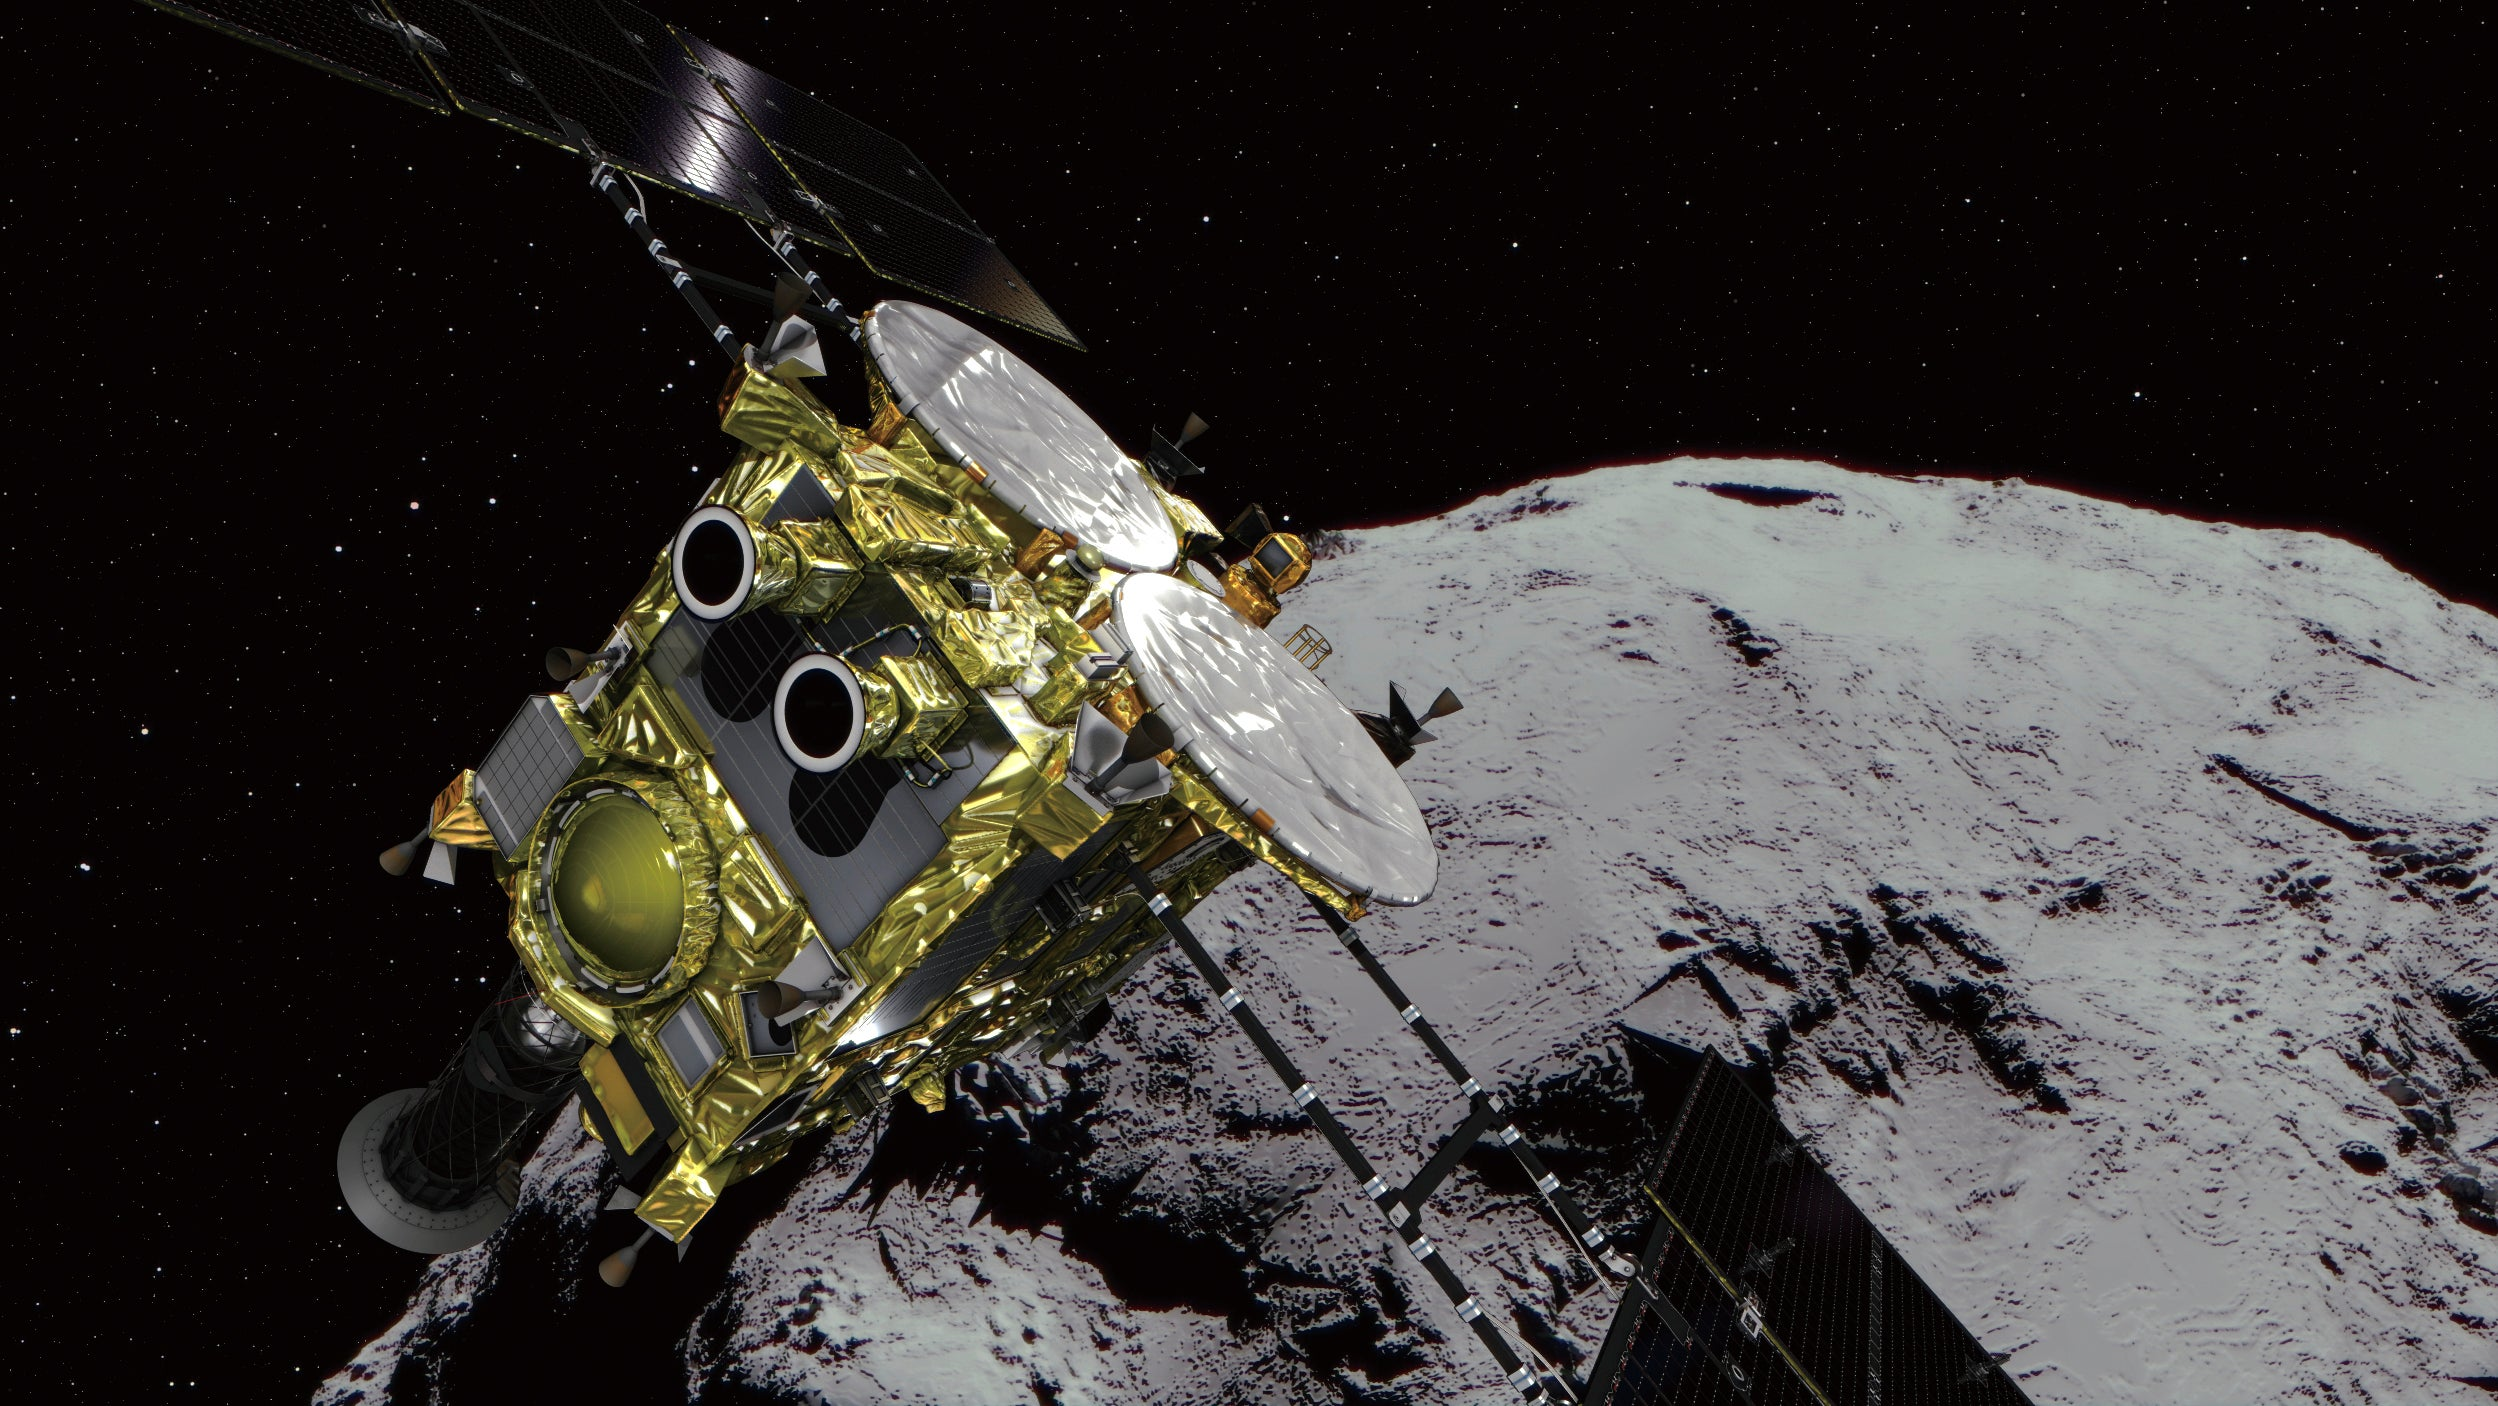 Hayabusa2's Mission To Touch Down On The Asteroid Ryugu Has Been Delayed Until 2019